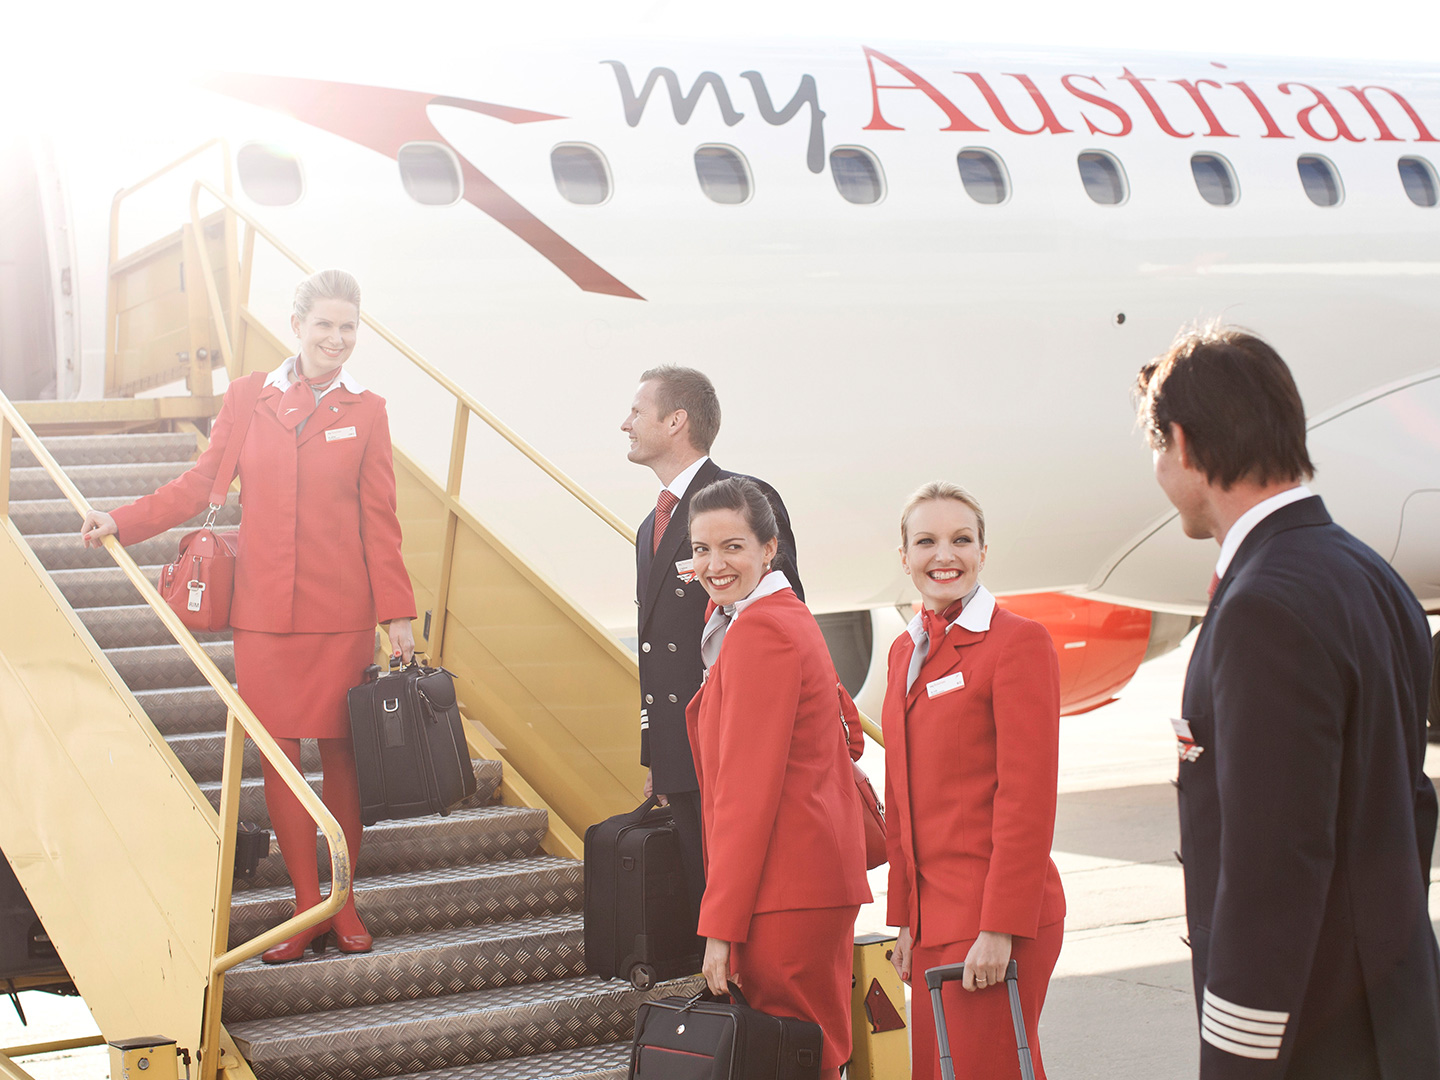 Photo: Services Team Austrian Airlines Airport